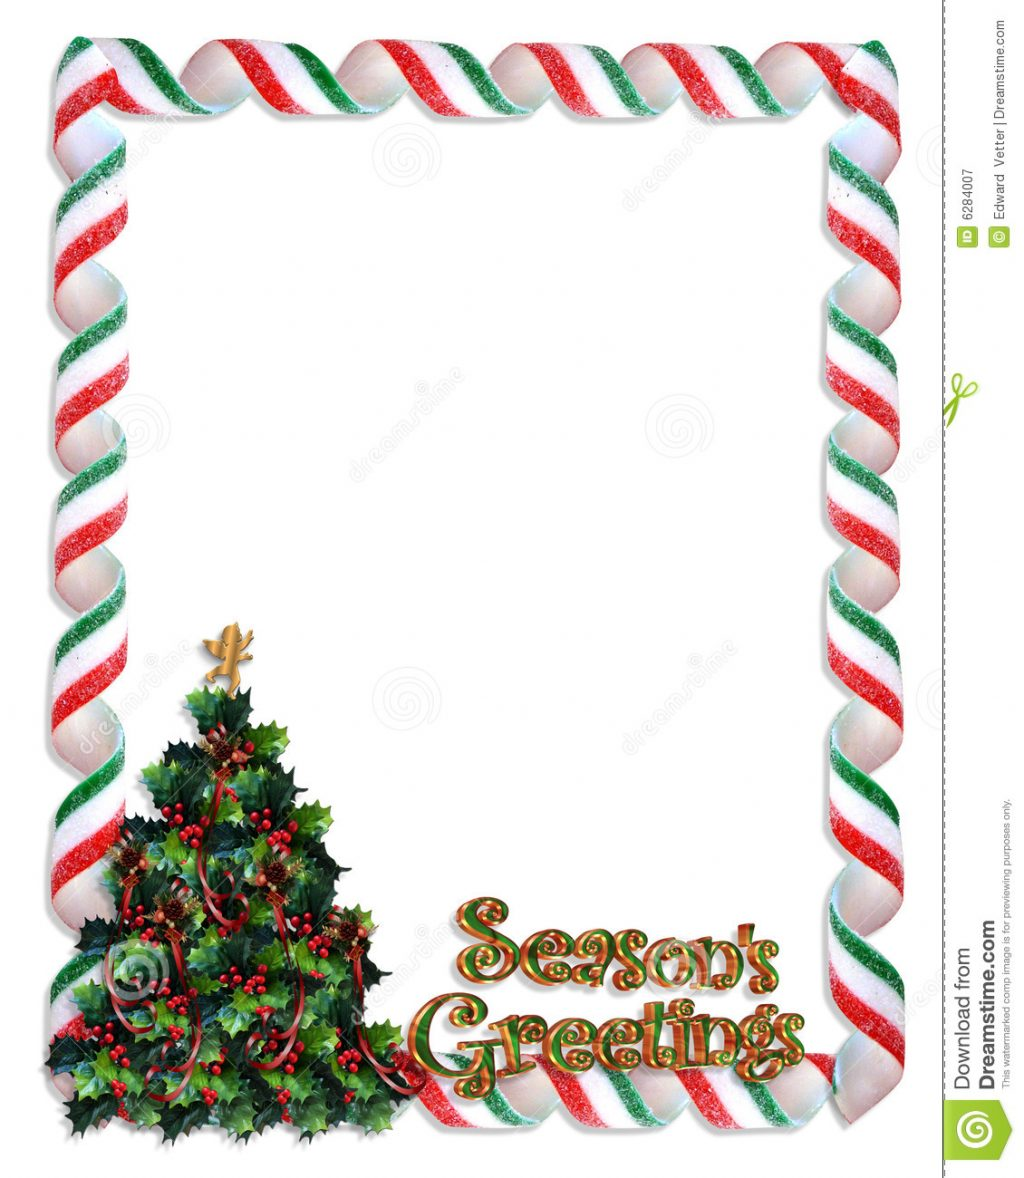 1024x1178 Christmas ~ Christmas Tree Frame Border Stock Illustration Image